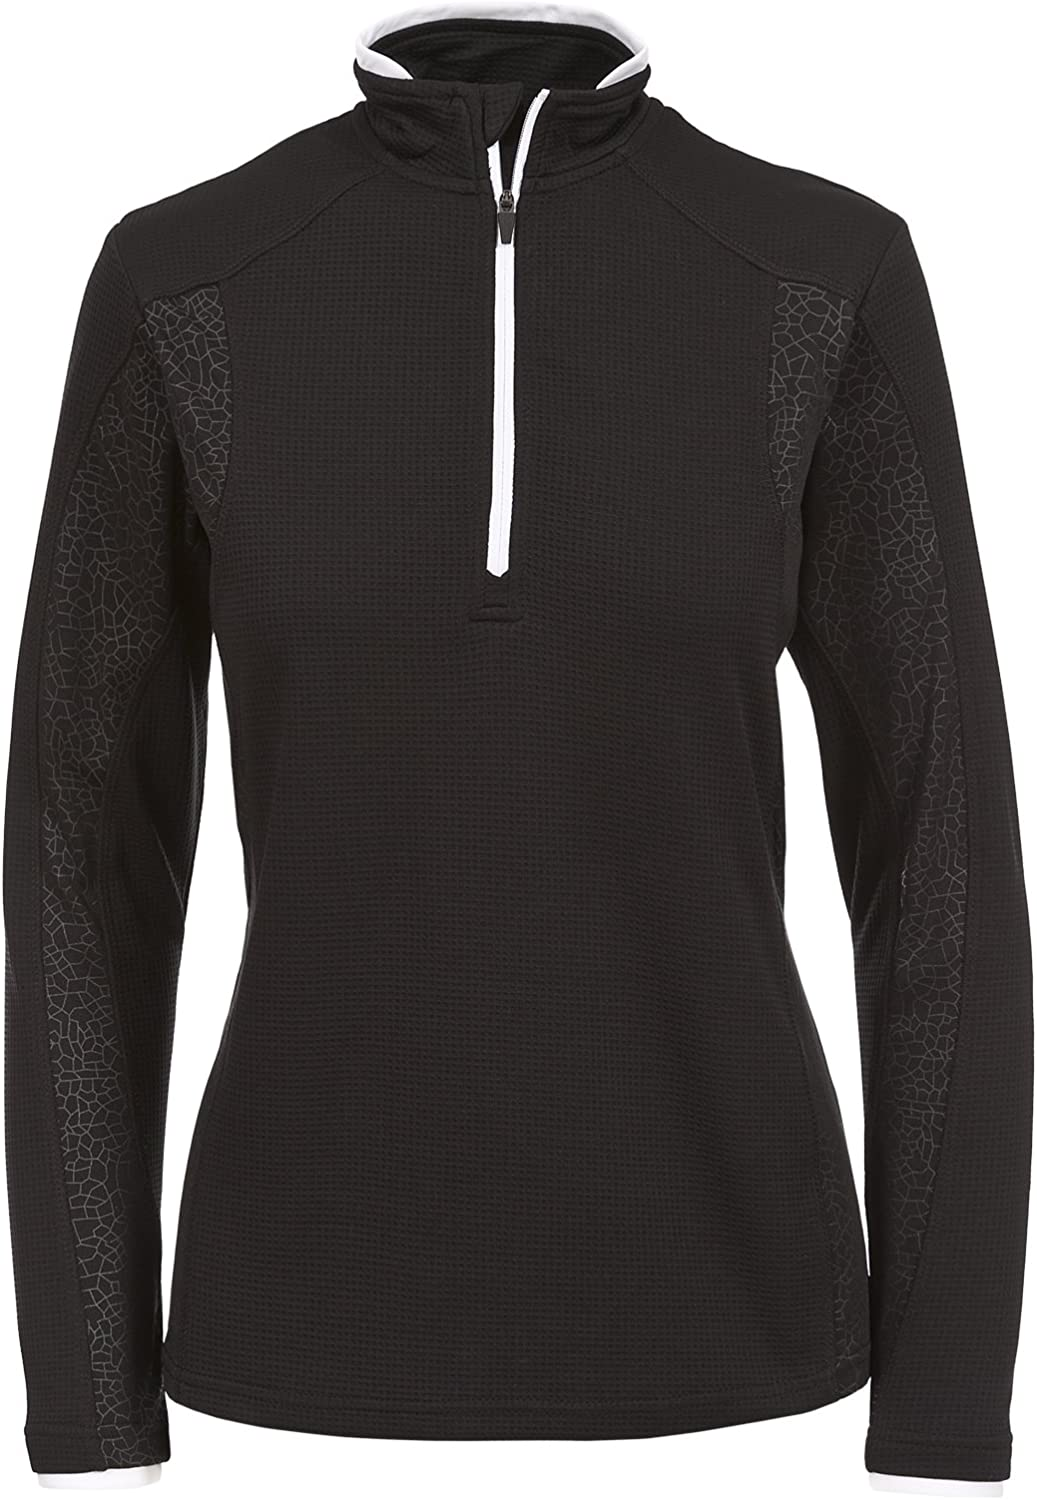 Trespass Ollog Active Tp75 Top, Mujer